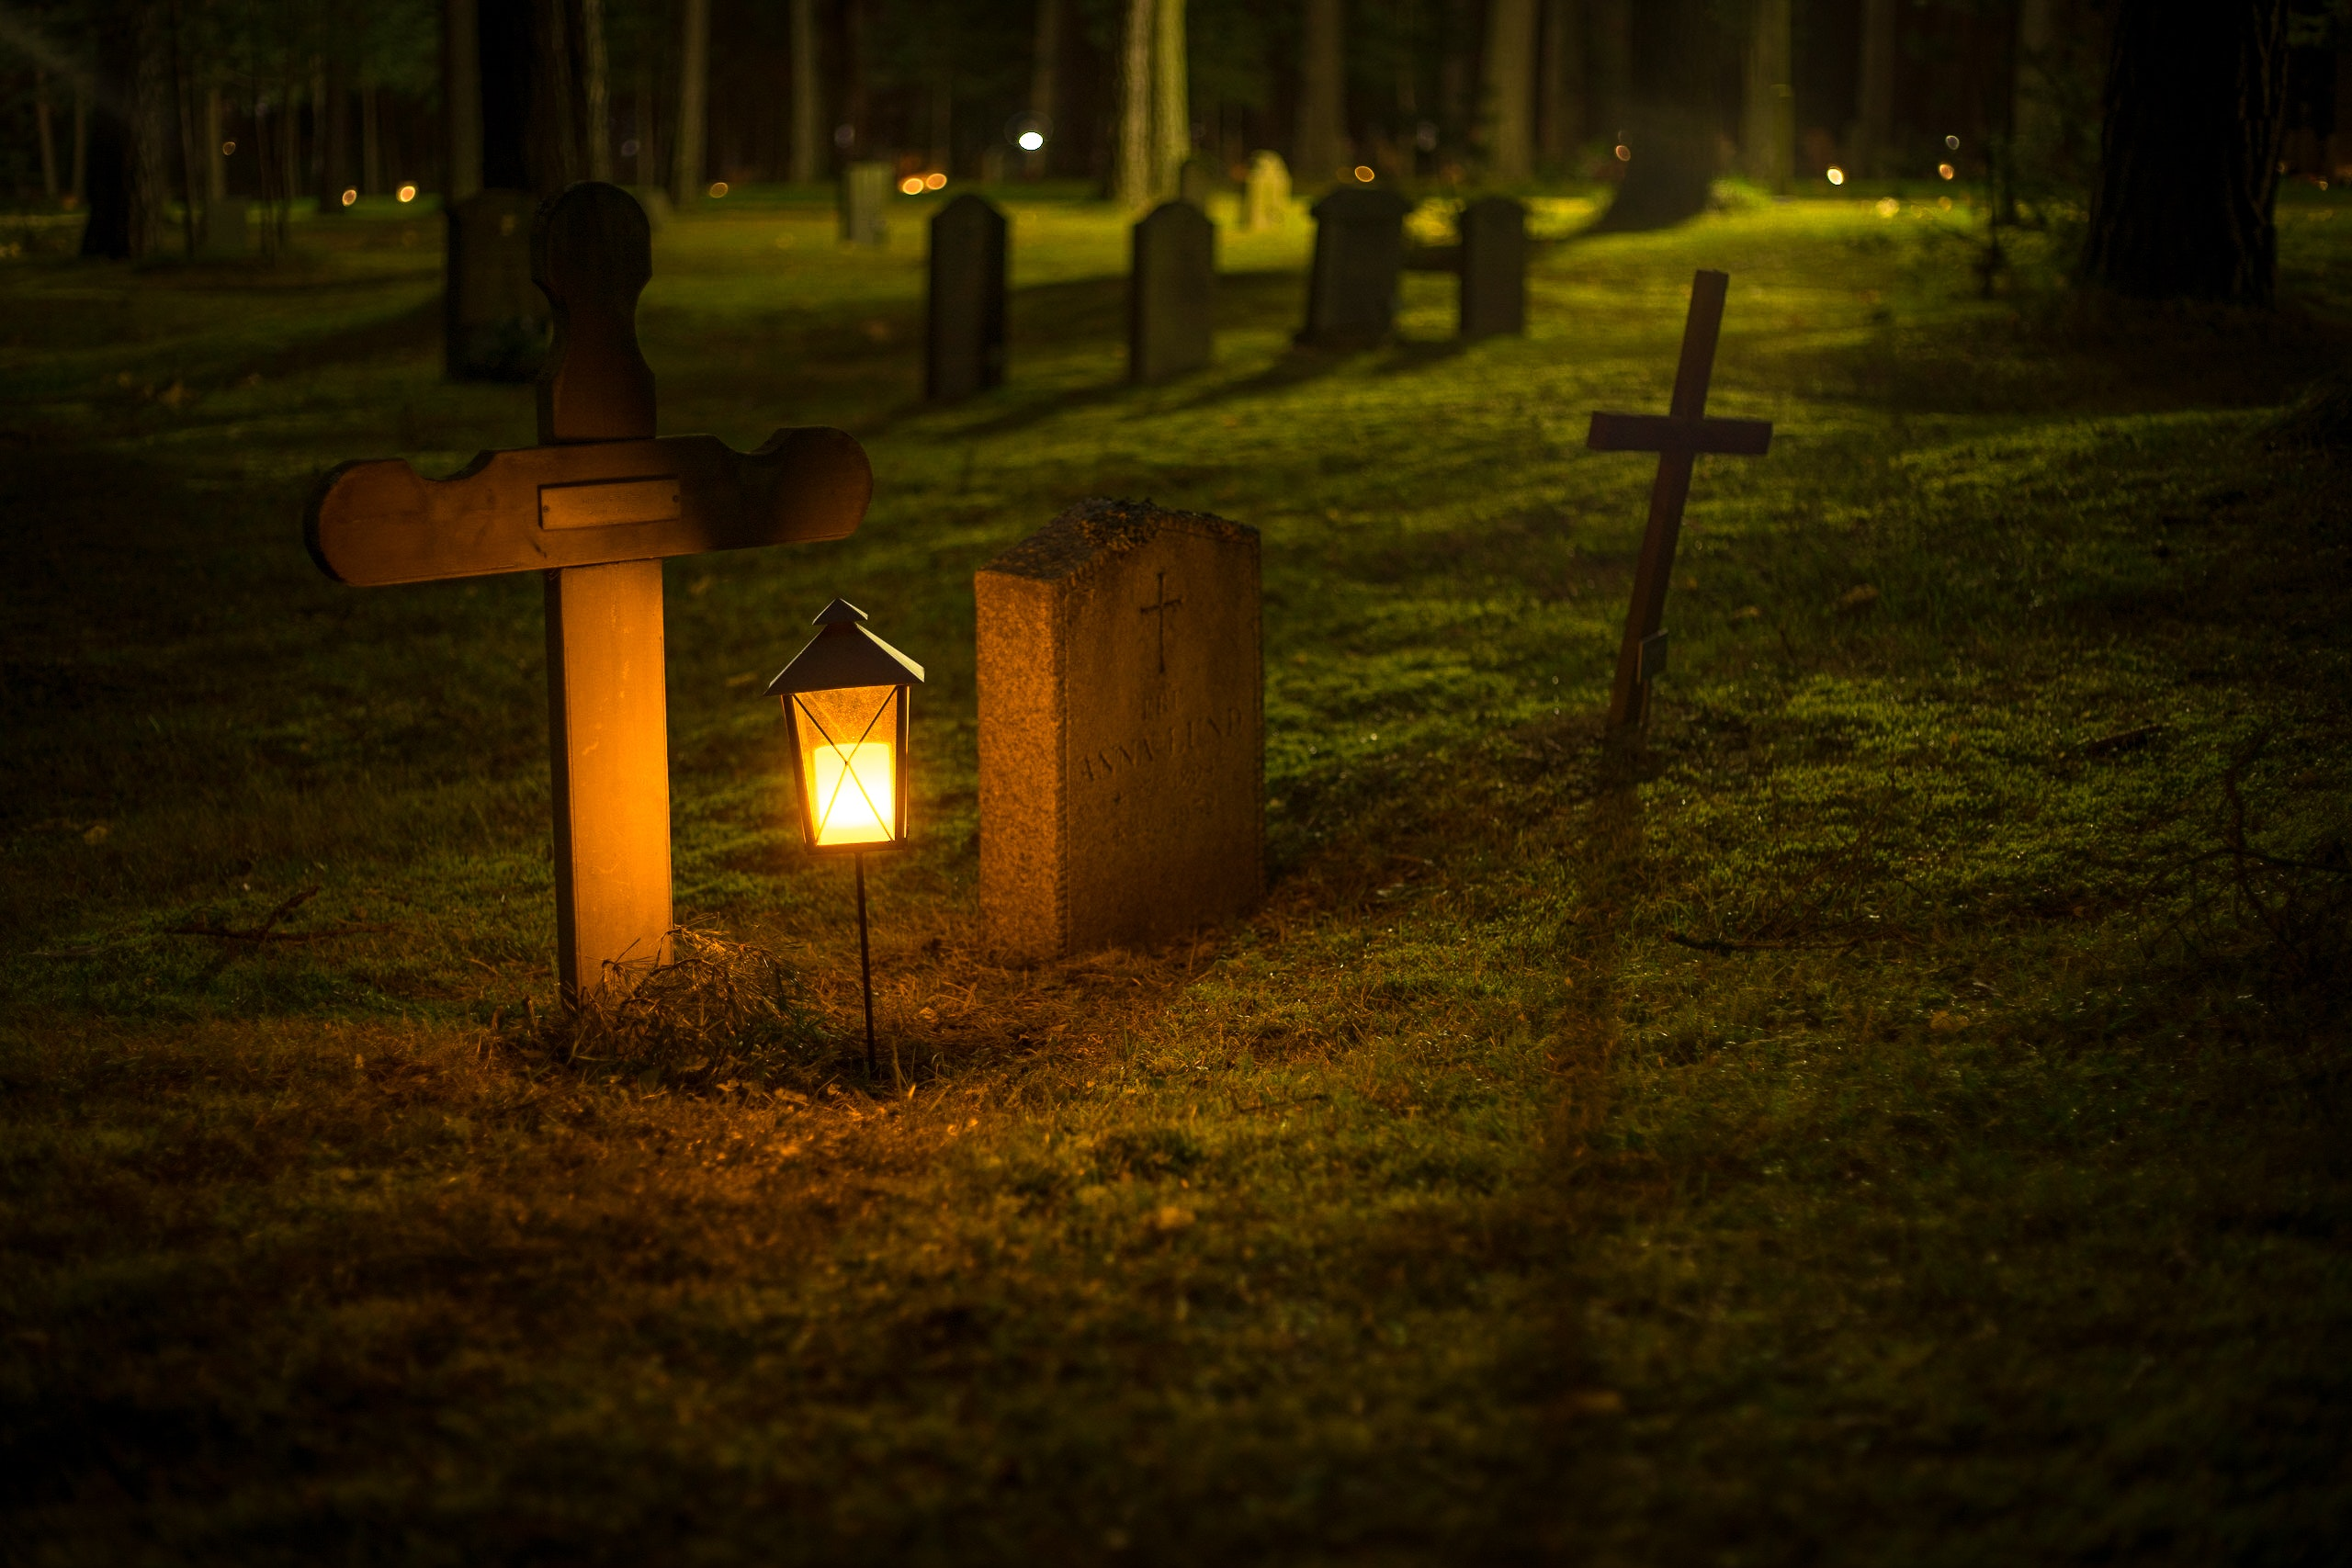 Selective Focus Photo of Cemetery Lantern, Cemetery, Tombstone, Outdoors, Night, HQ Photo